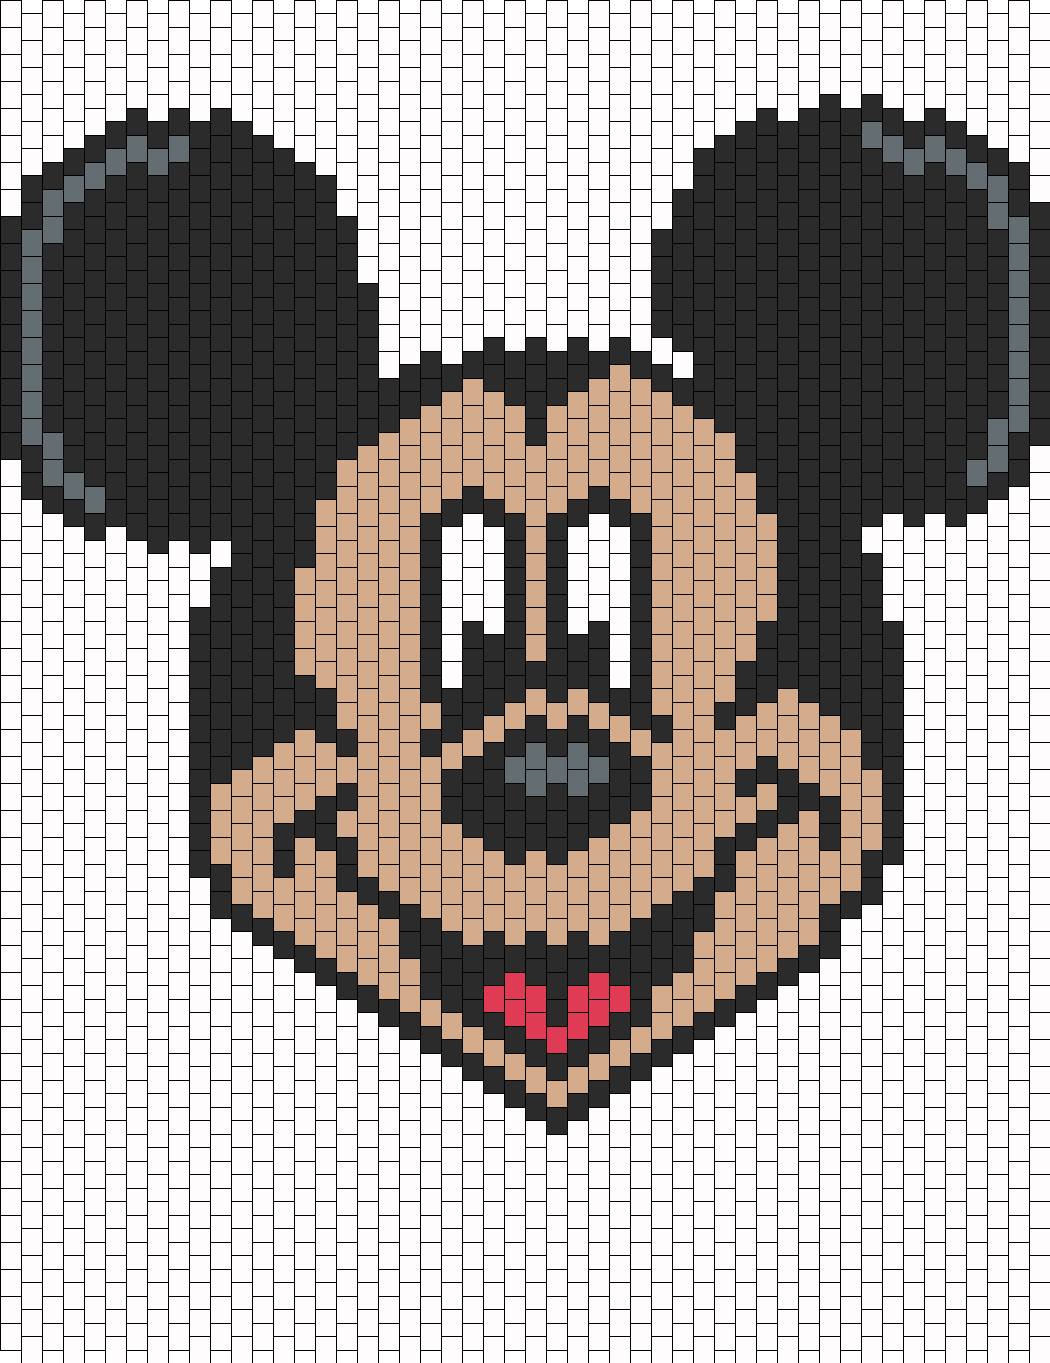 mickey mouse bead pattern peyote bead patterns characters bead patterns. Black Bedroom Furniture Sets. Home Design Ideas